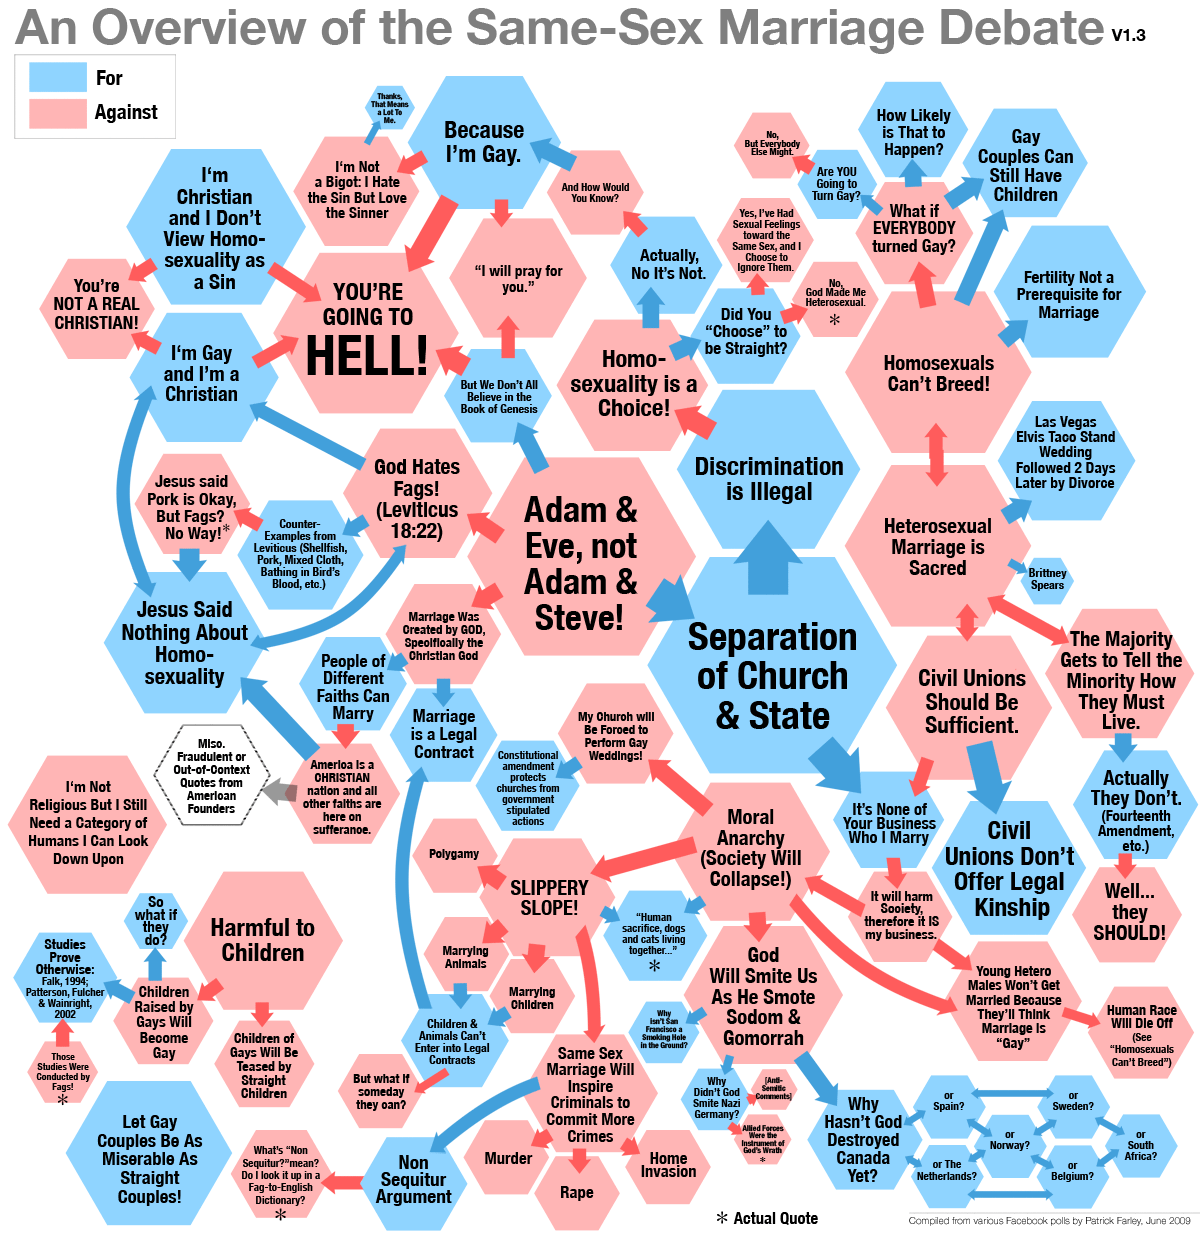 Same-Sex Marriage: From 0 To 100 Percent, In One Chart